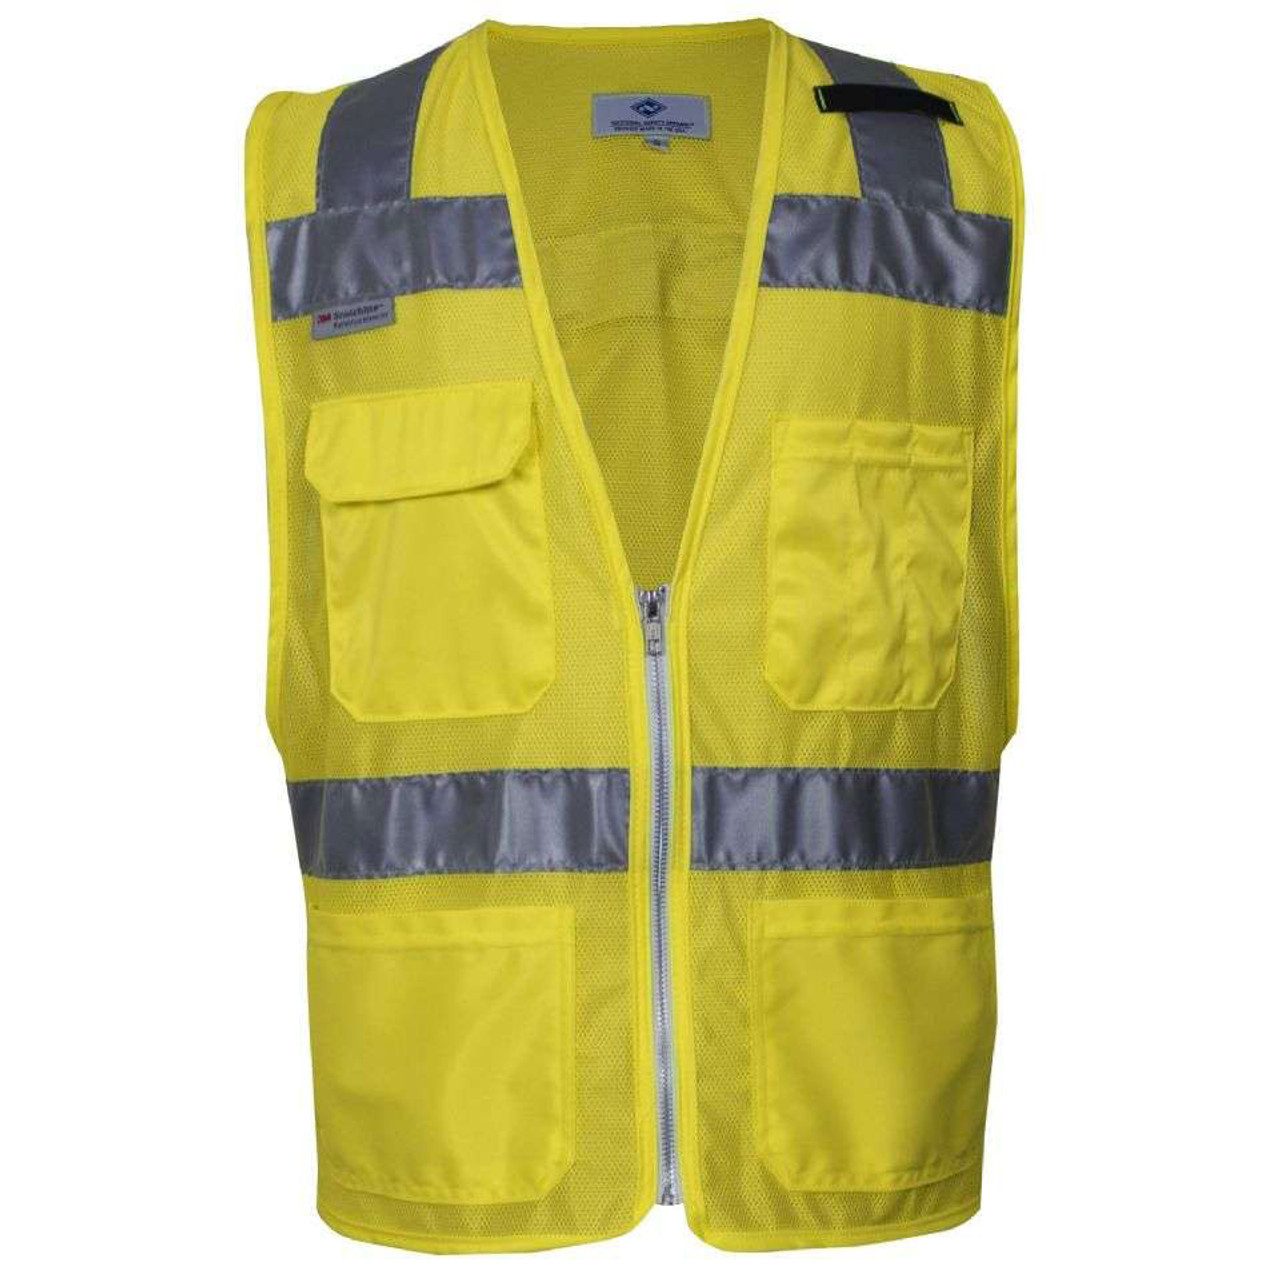 Smart Reflective Safety Vest Pockets Breathable Yellow Orange Mesh Vest Work Wear Safety Clothing Workplace Safety Supplies